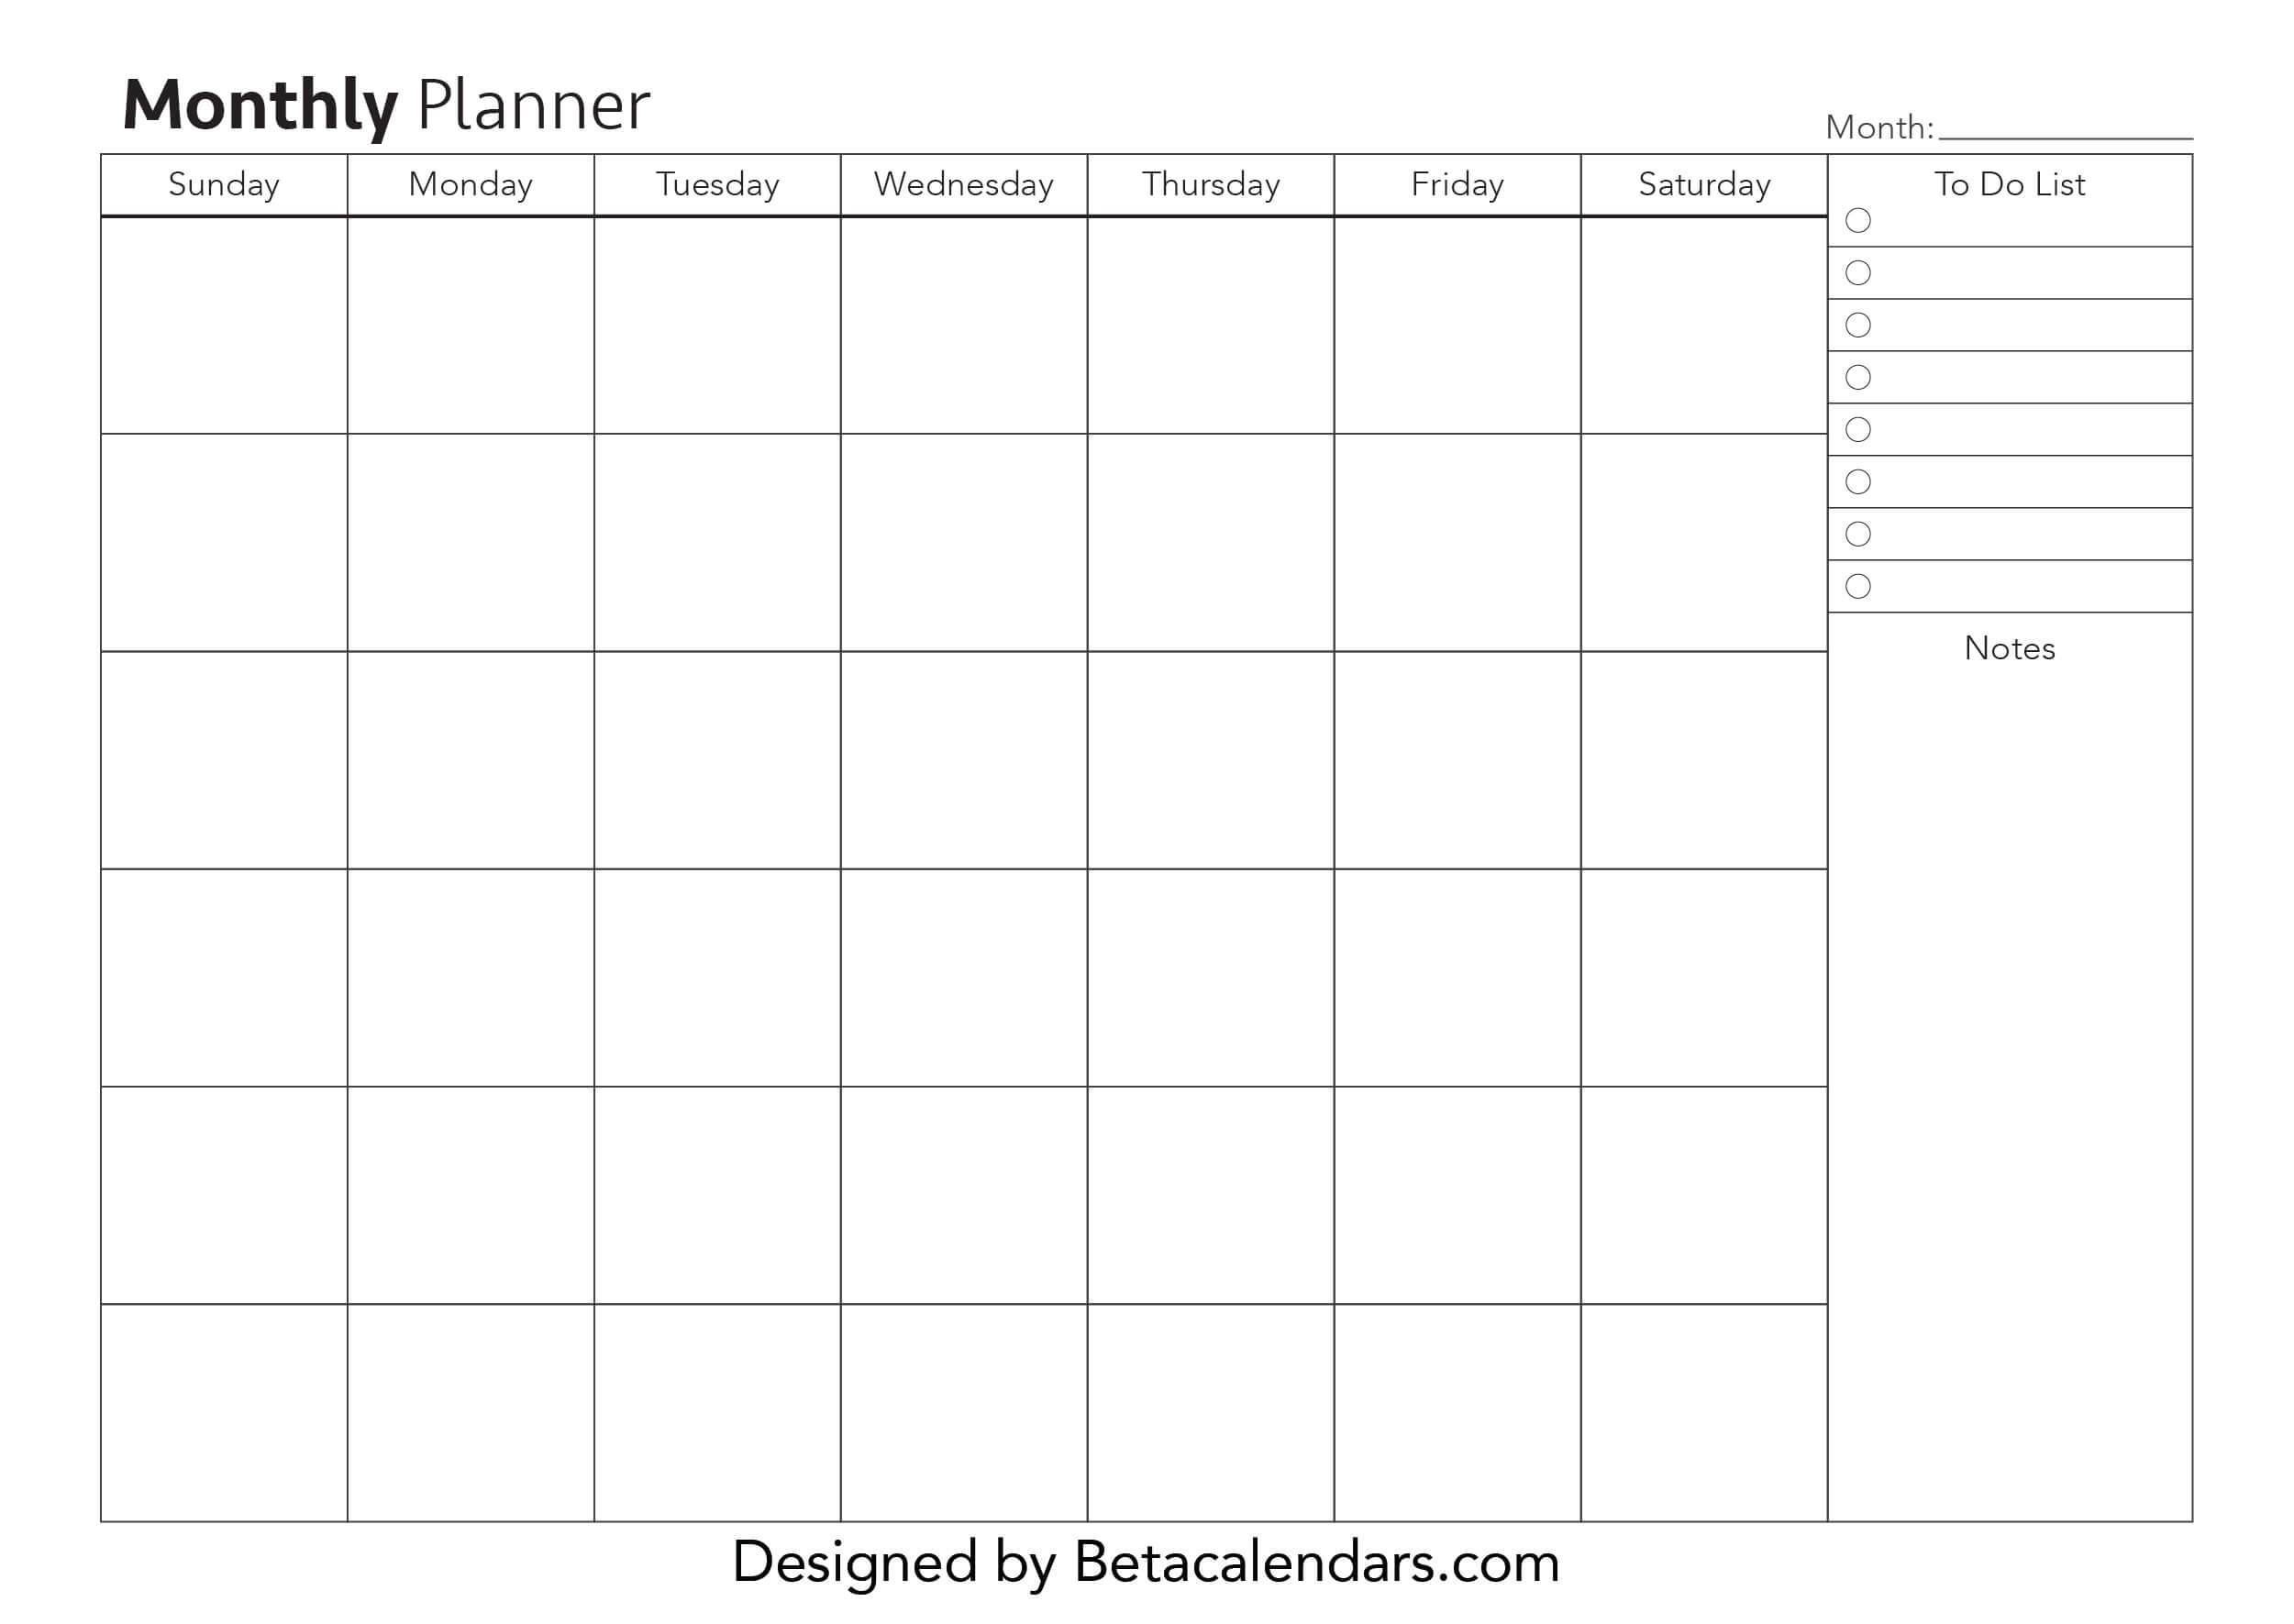 Monthly Planner | Free Blank Printable Monthly Planners